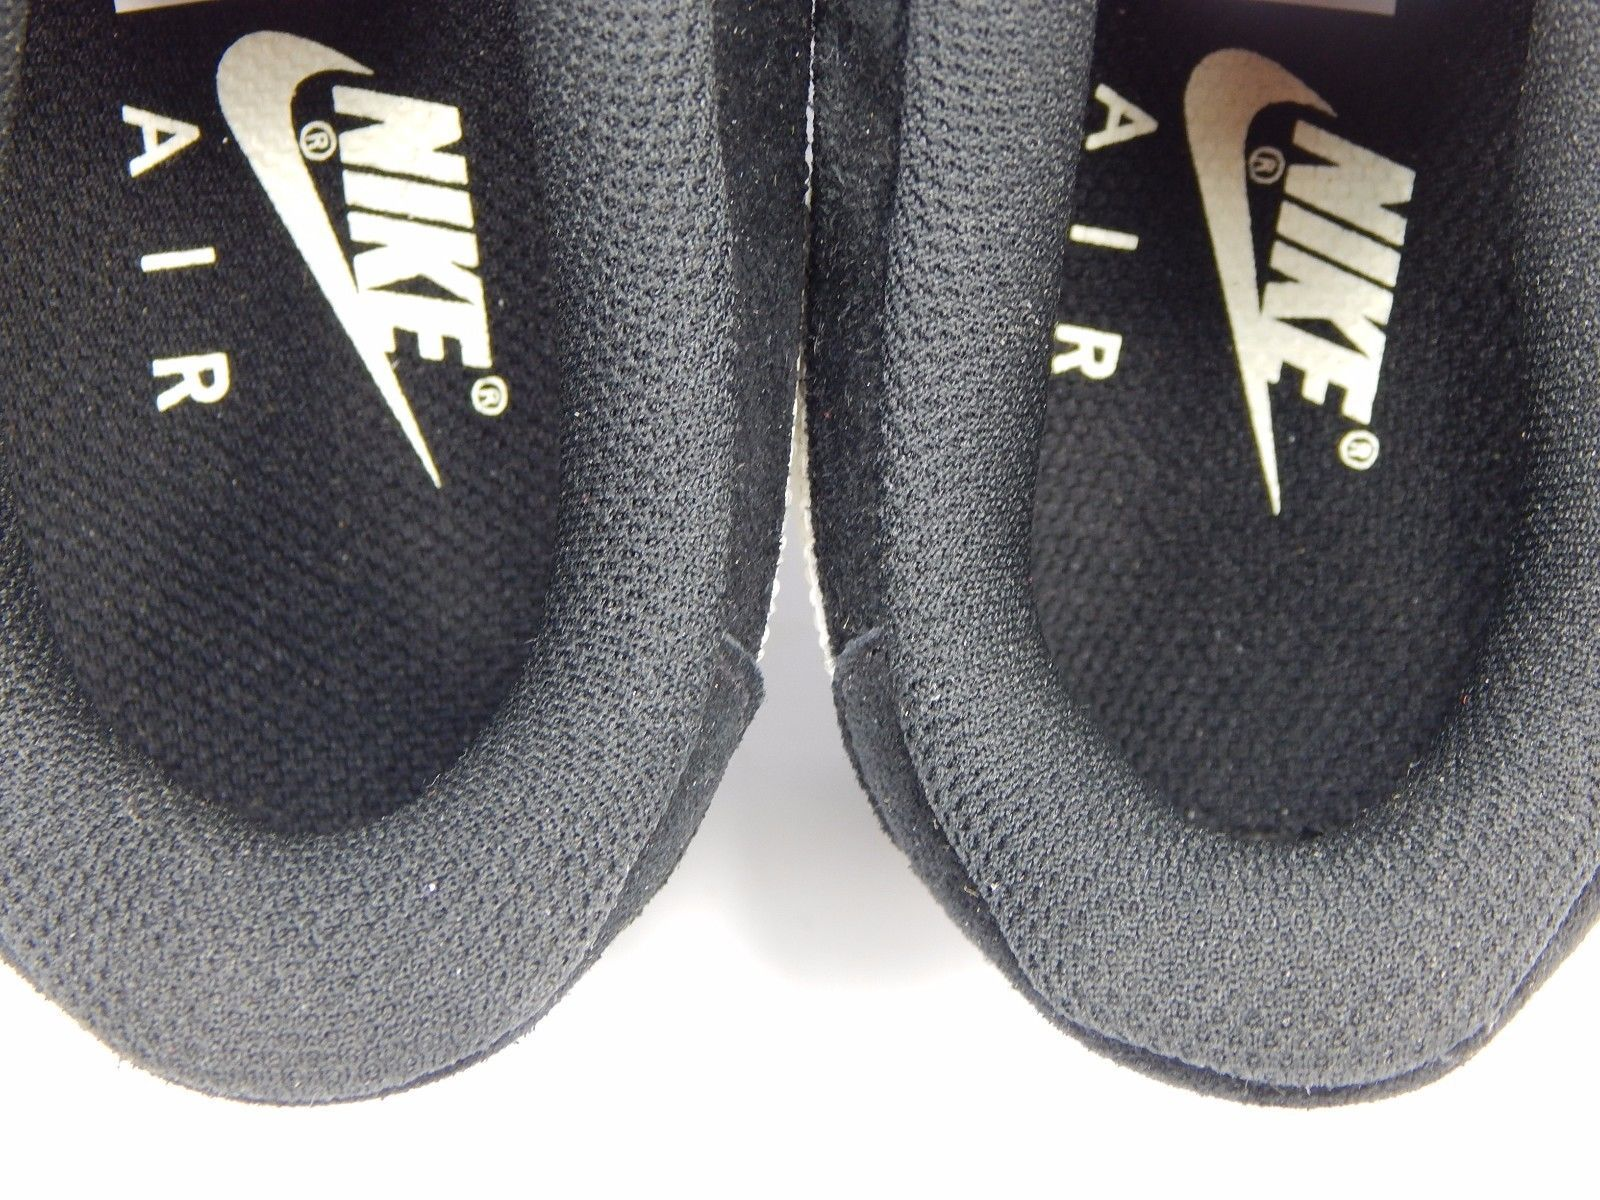 Nike Air Force 1 Big Kid's Youth Casual Shoes Size 7 Y (M) EU 40 596728-025